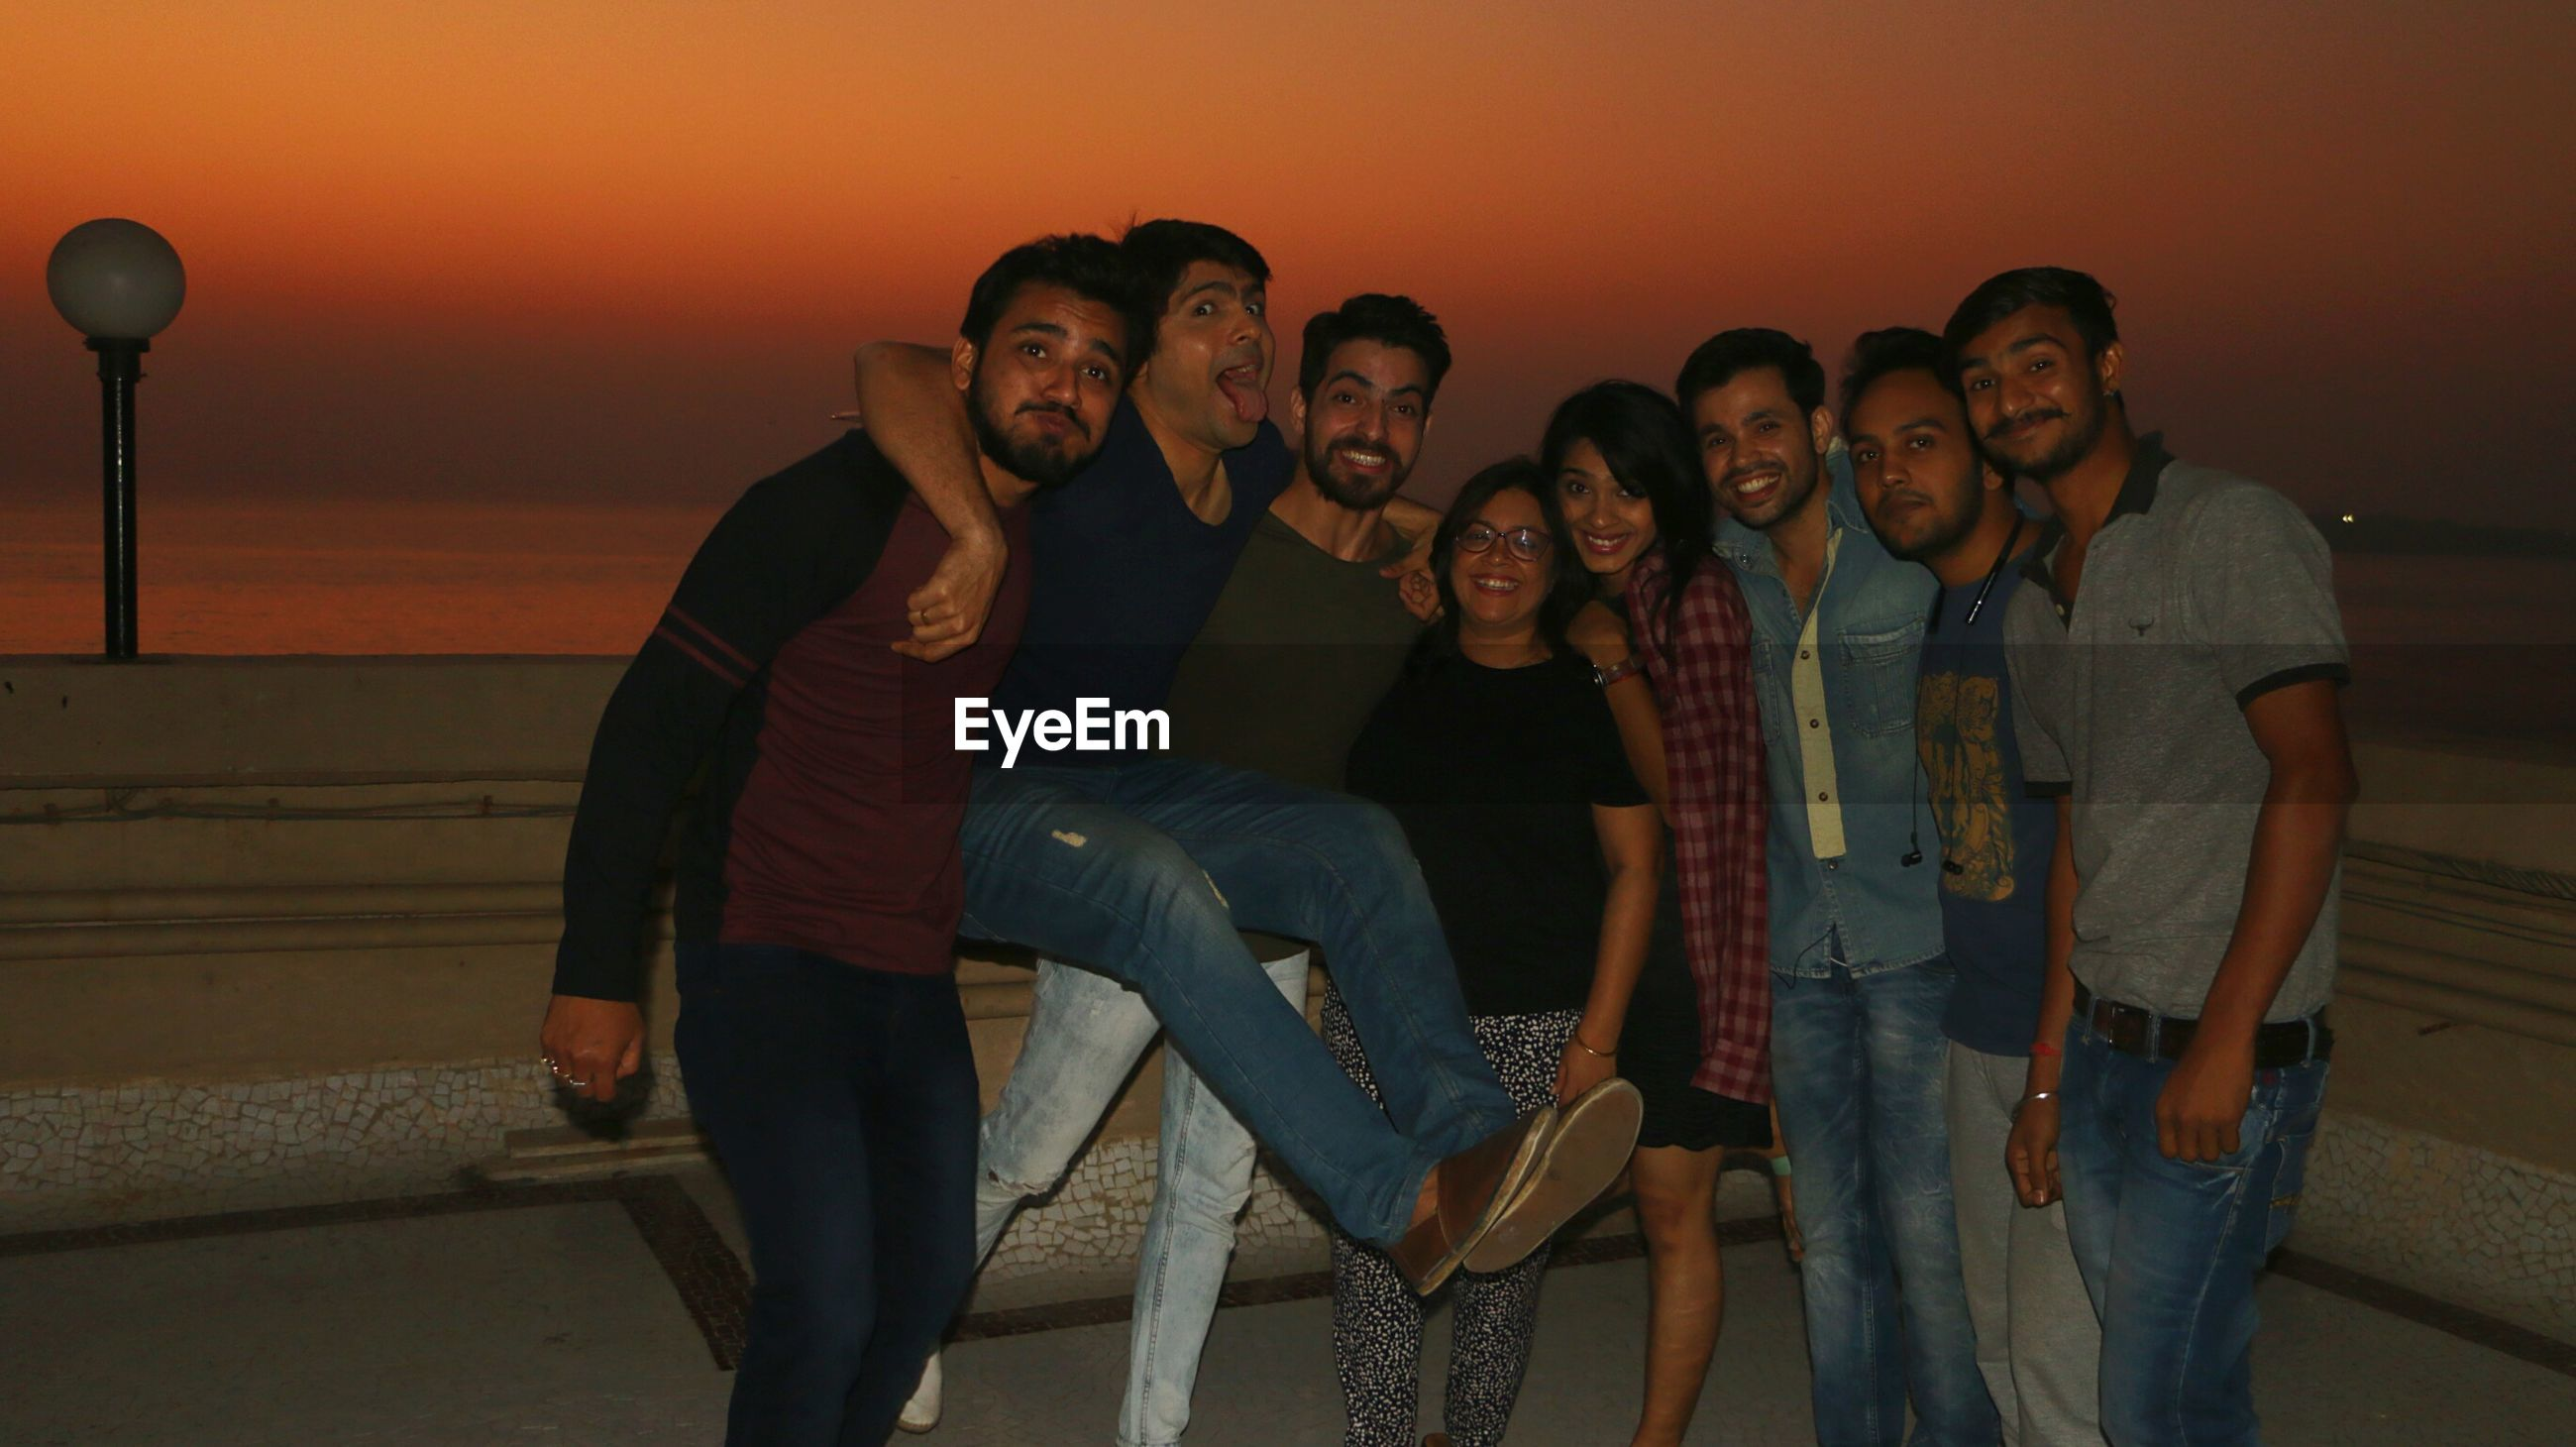 archival, friendship, only men, adults only, sunset, men, people, party - social event, group of people, portrait, leisure activity, togetherness, night, adult, young adult, singer, nightlife, young women, musician, indoors, teamwork